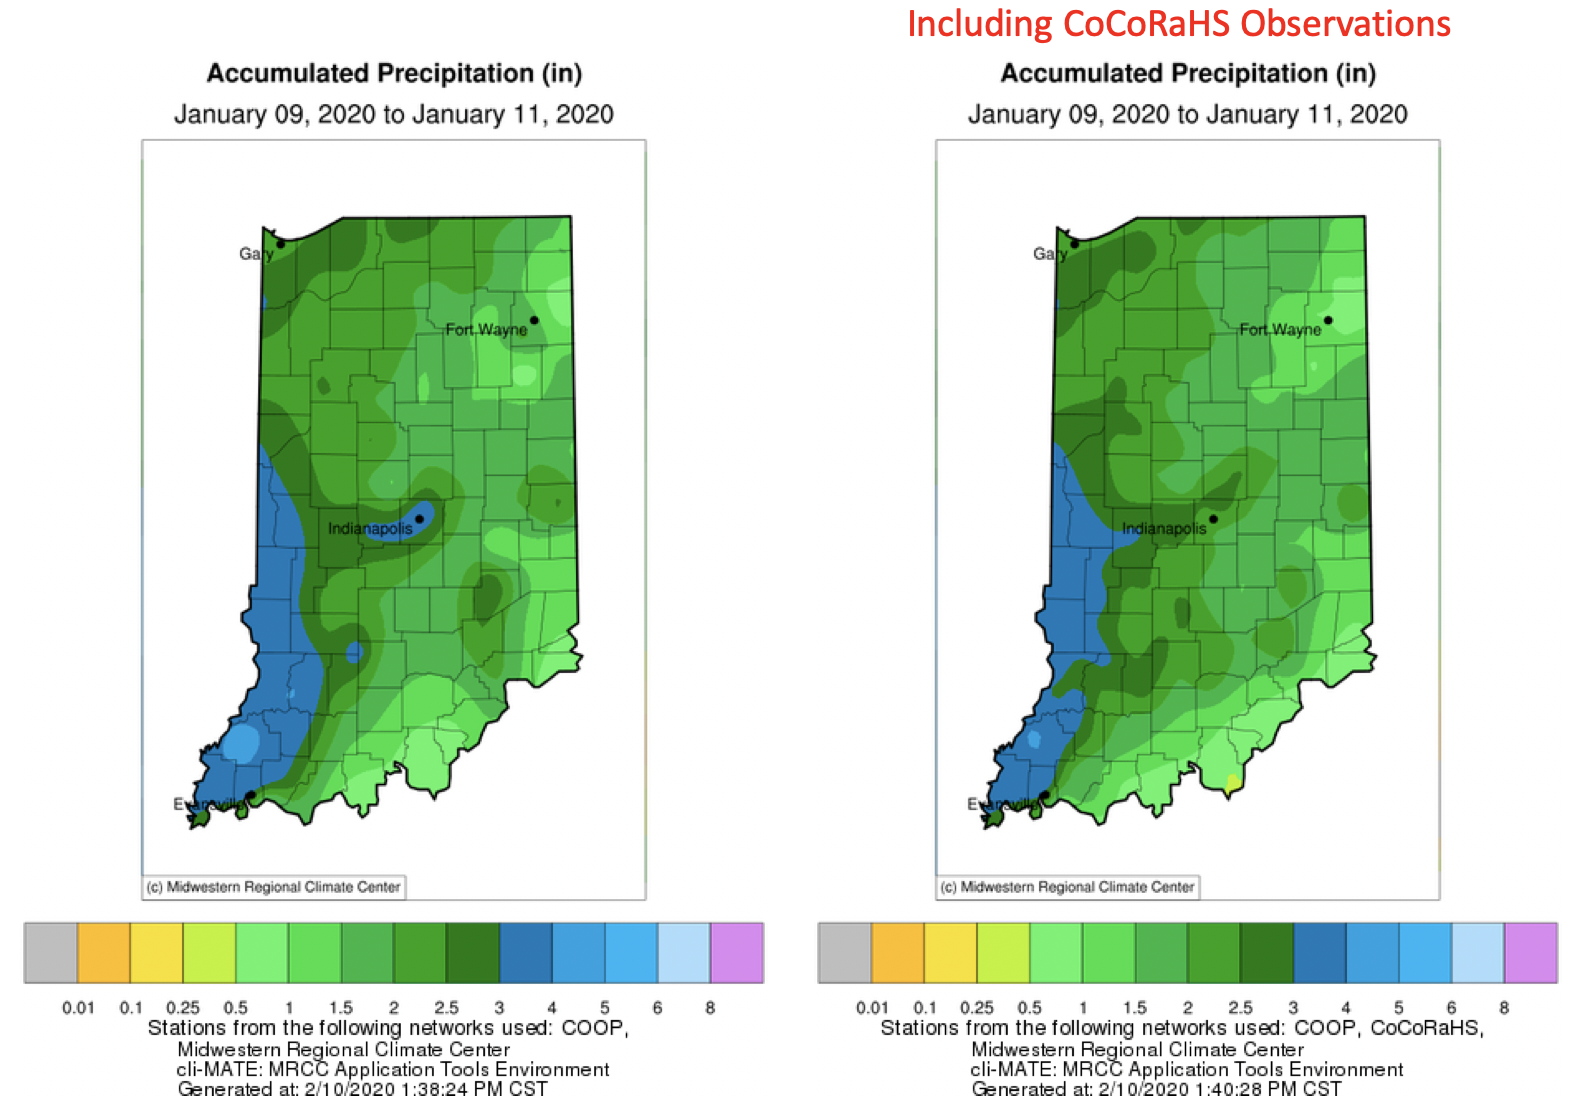 Figure 3. Comparison of maps showing interpolated precipitation observations when considering data from only the National Weather Service's Cooperative Network (COOP; left map) to the one that includes both COOP and CoCoRaHS data (right).